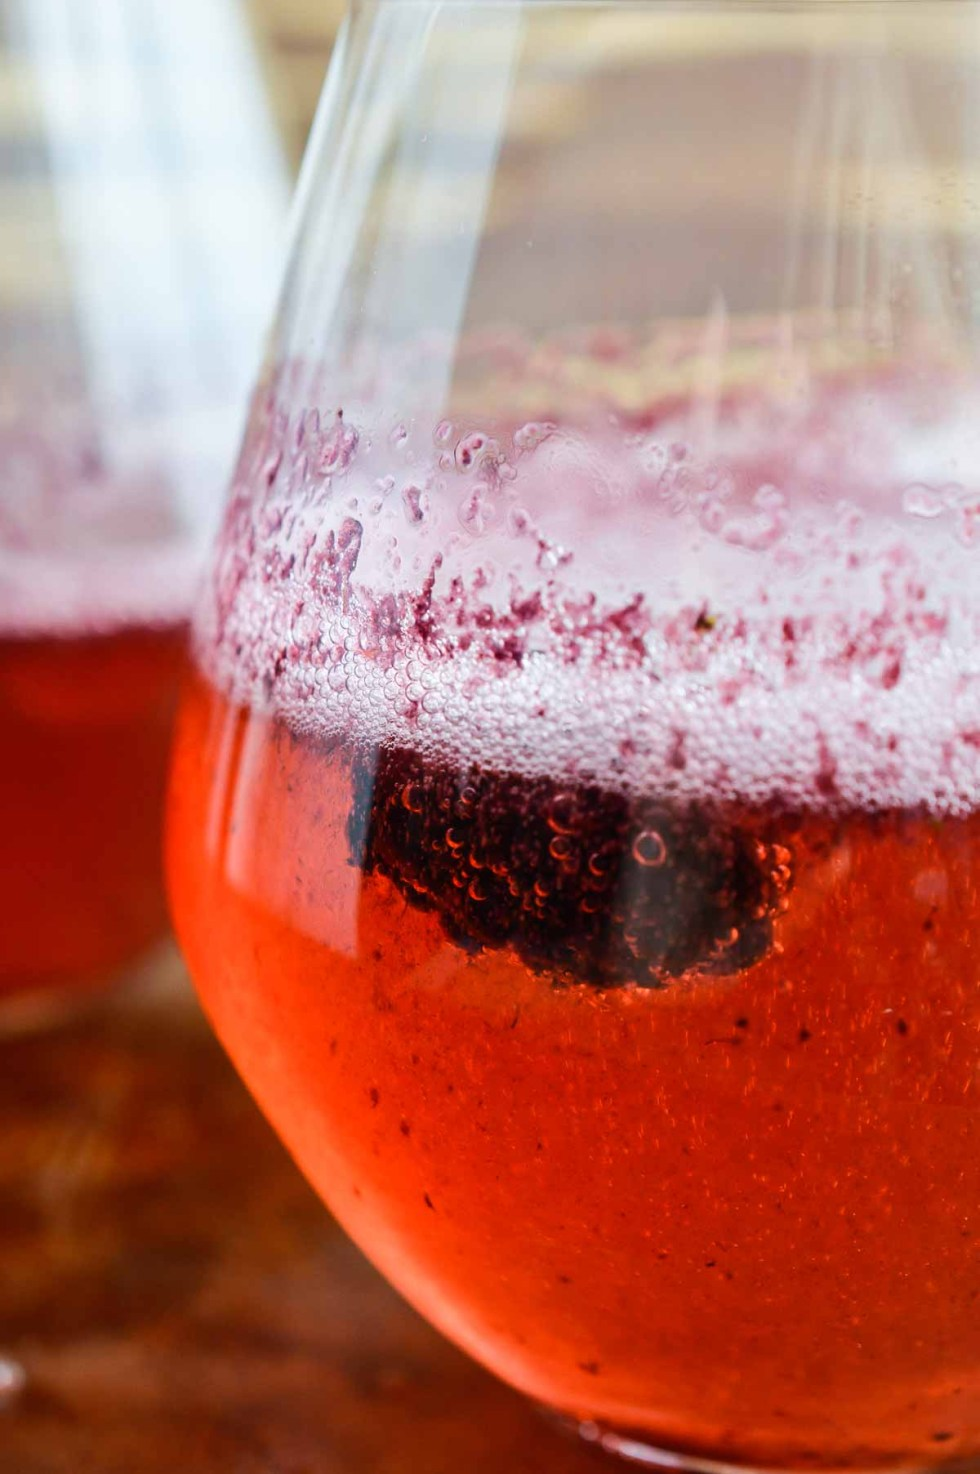 Toast to the New Year with this Blackberry Bellini Recipe. These bellini cocktails are also great for brunch! A simple blend of blackberry puree and prosecco or champagne.